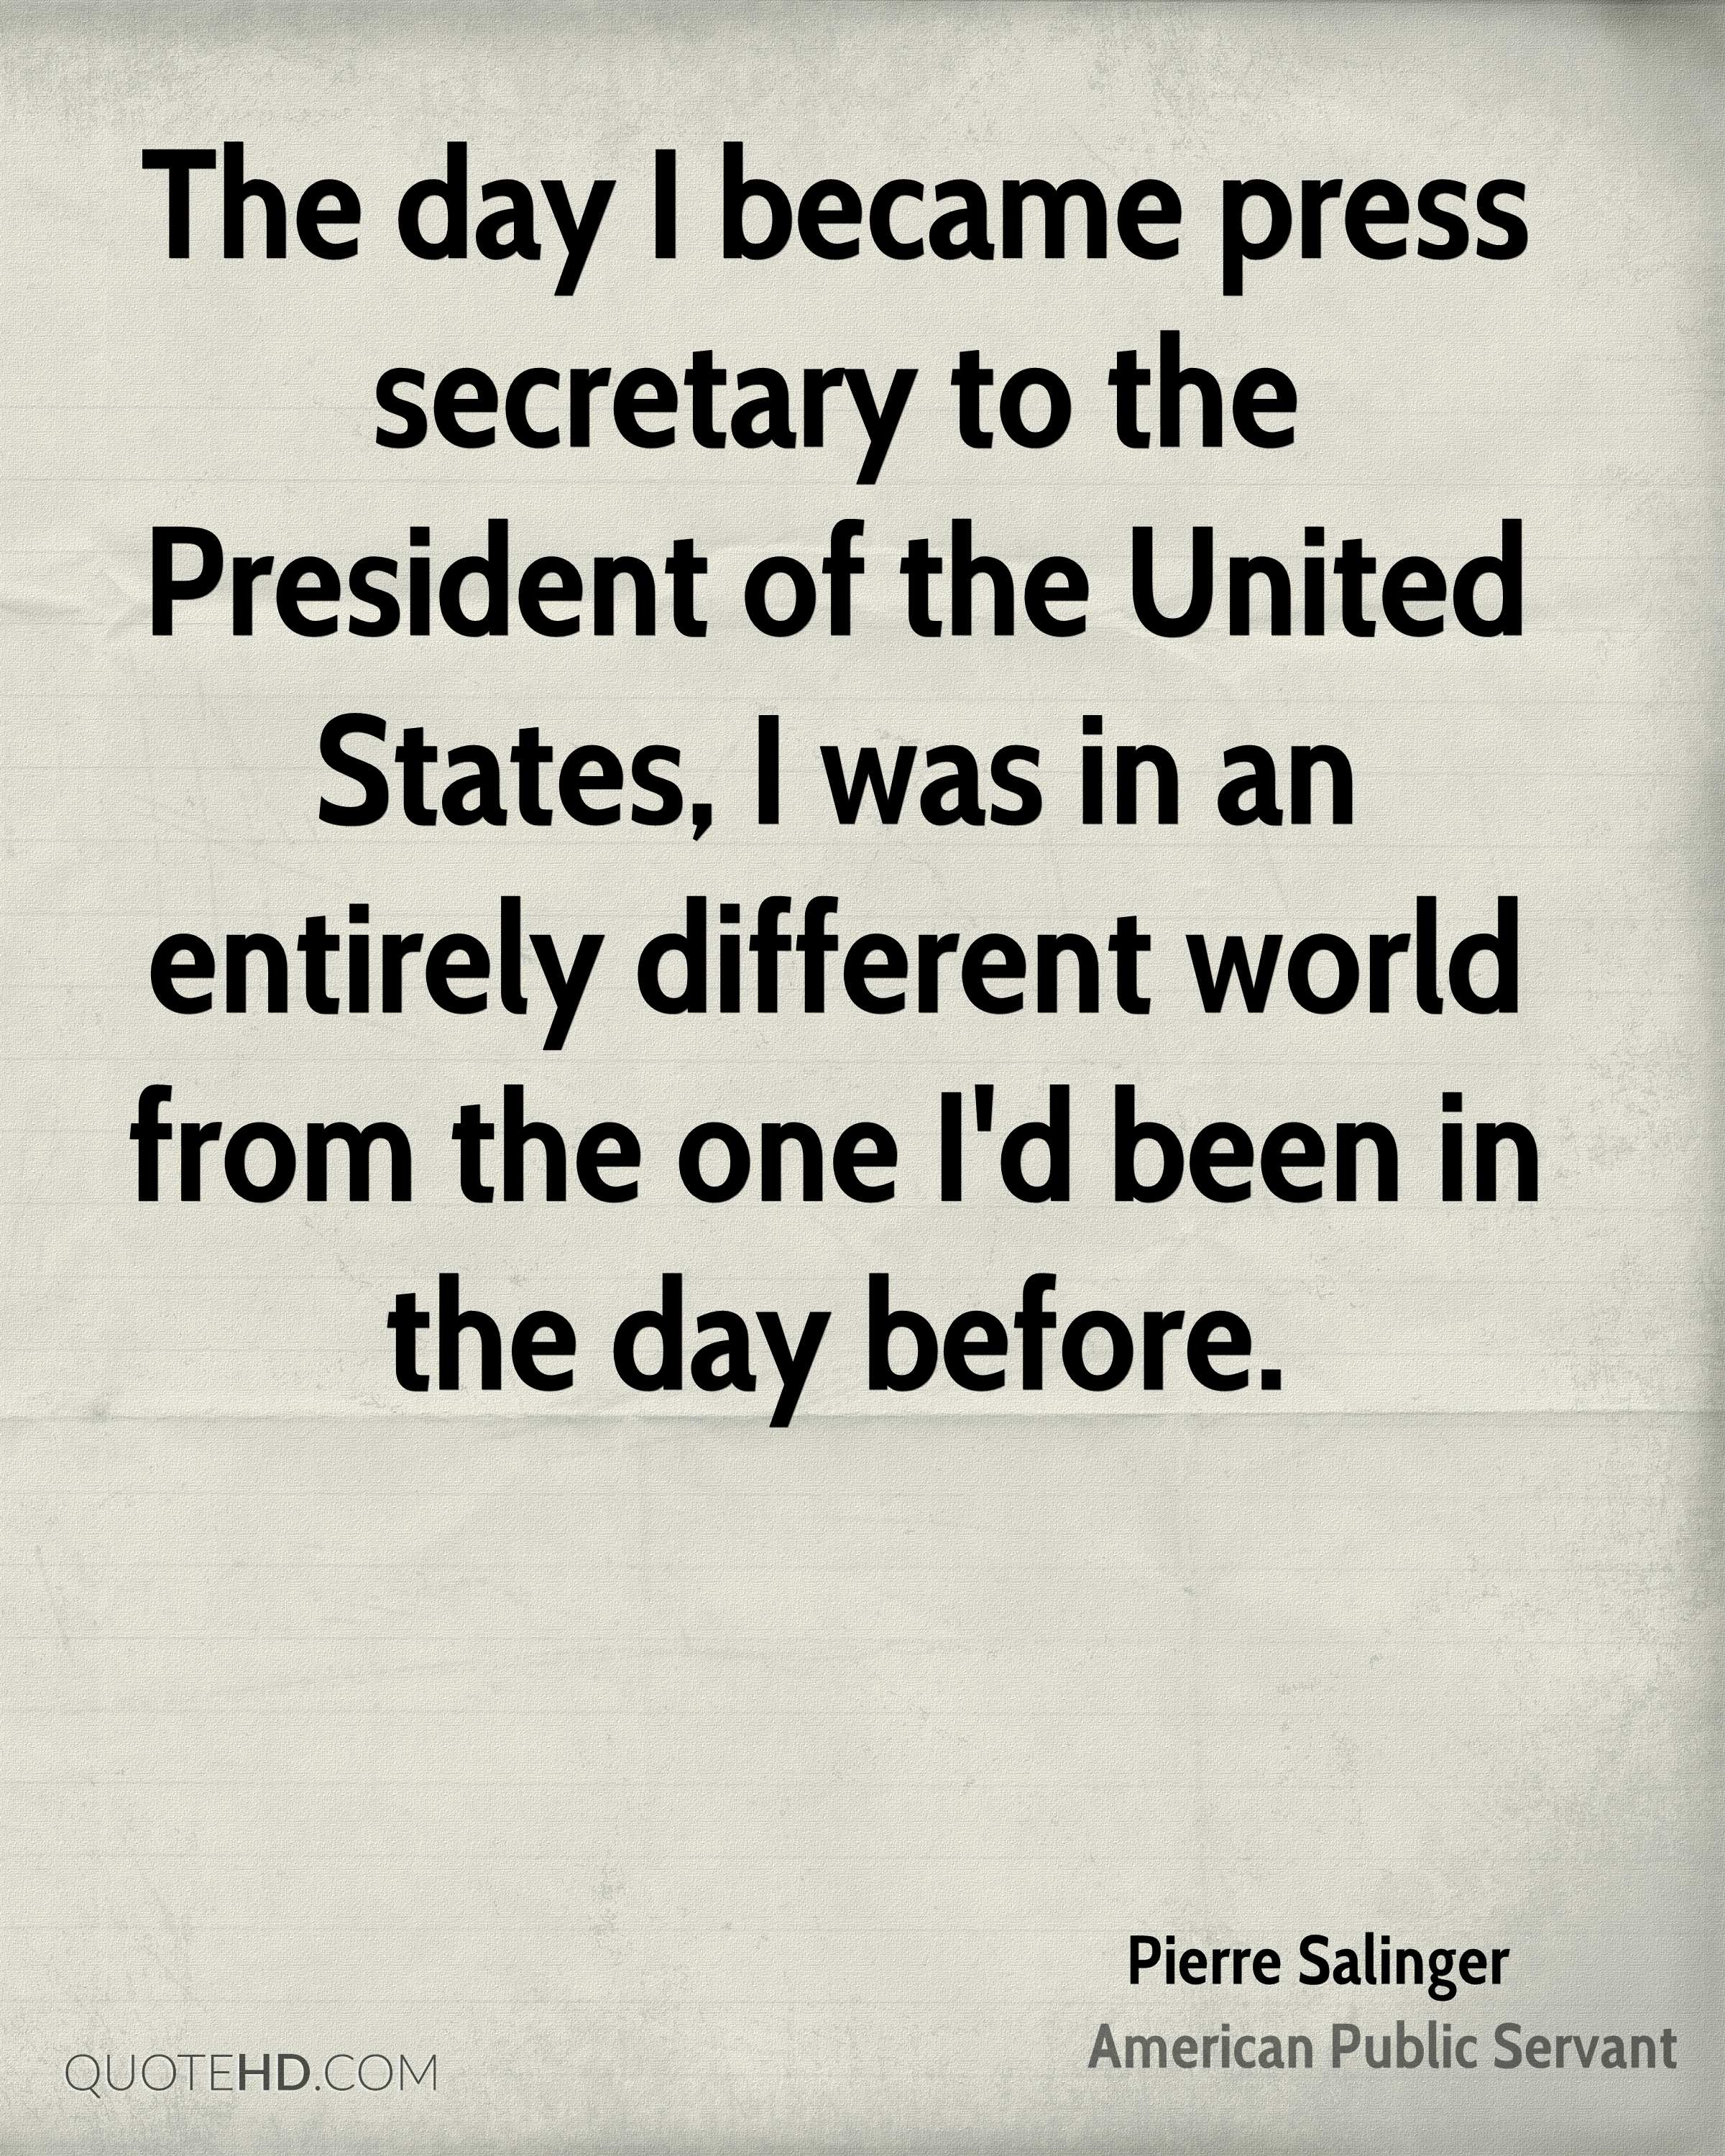 The day I became press secretary to the President of the United States, I was in an entirely different world from the one I'd been in the day before.